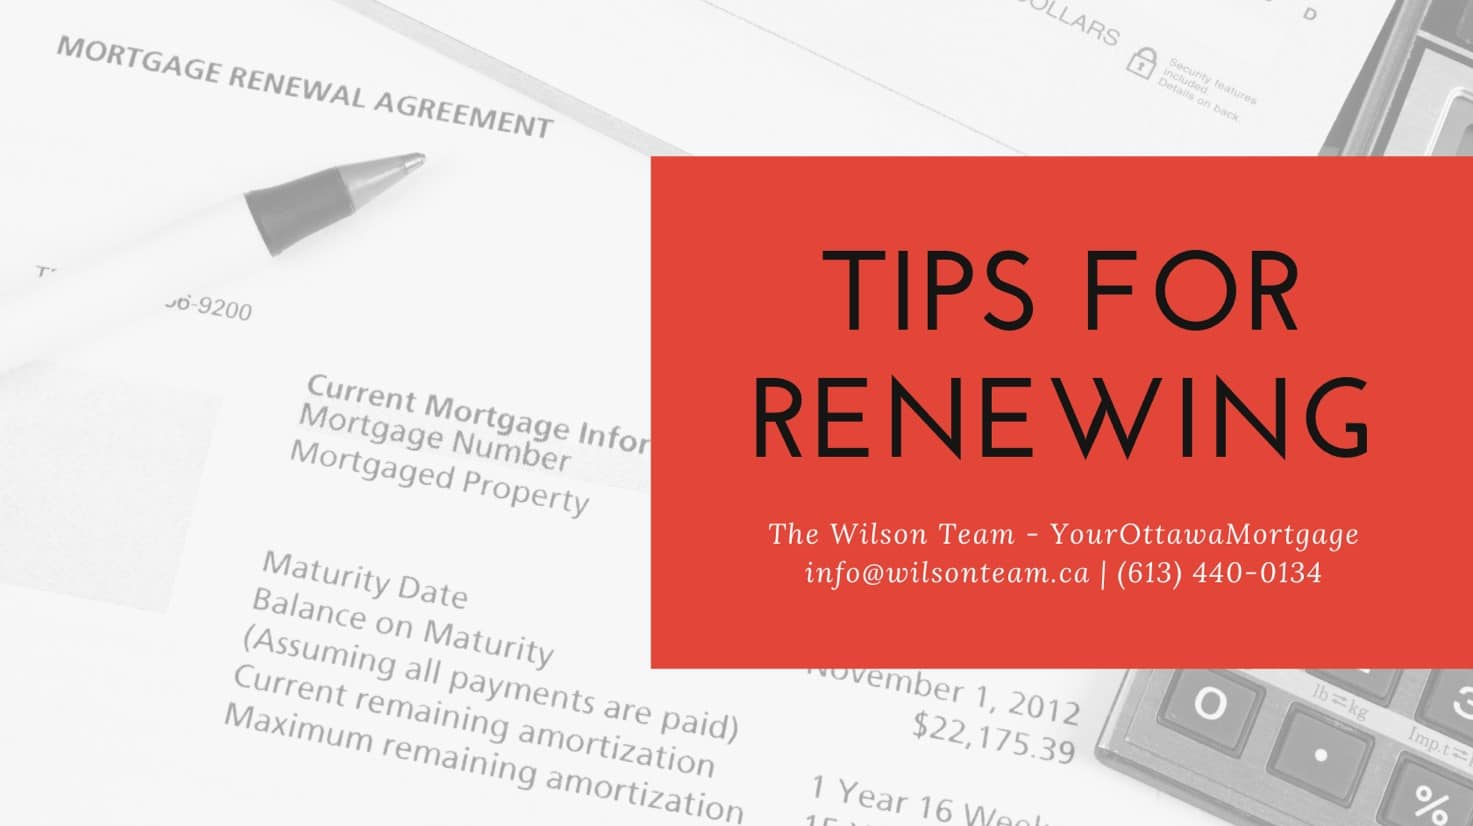 Ottawa Mortgage | Tips for Renewing Your Mortgage